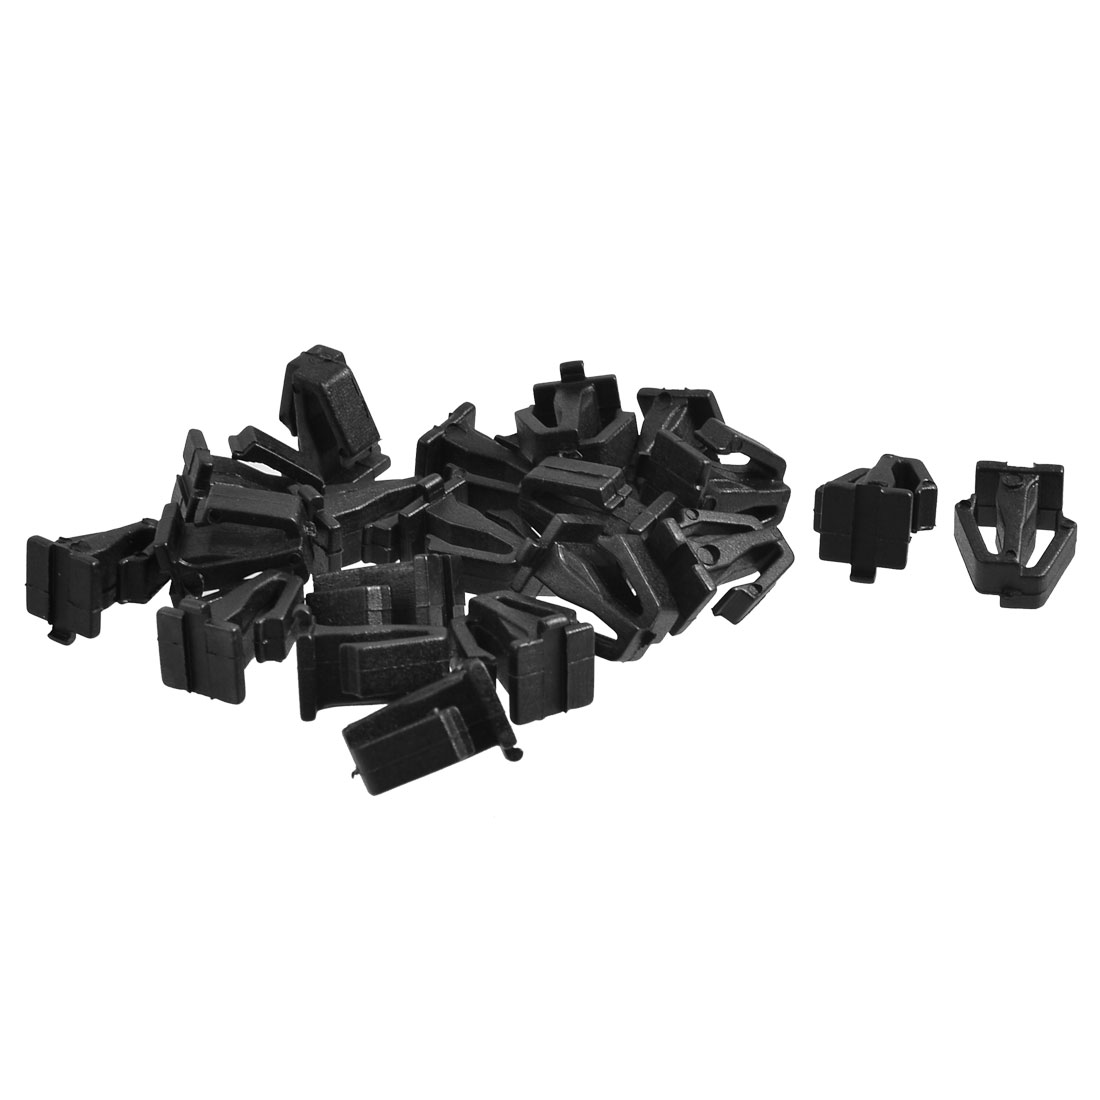 Plastic Rivets Fastener Car Fender Bumper Push in Clips Black 20 Pcs